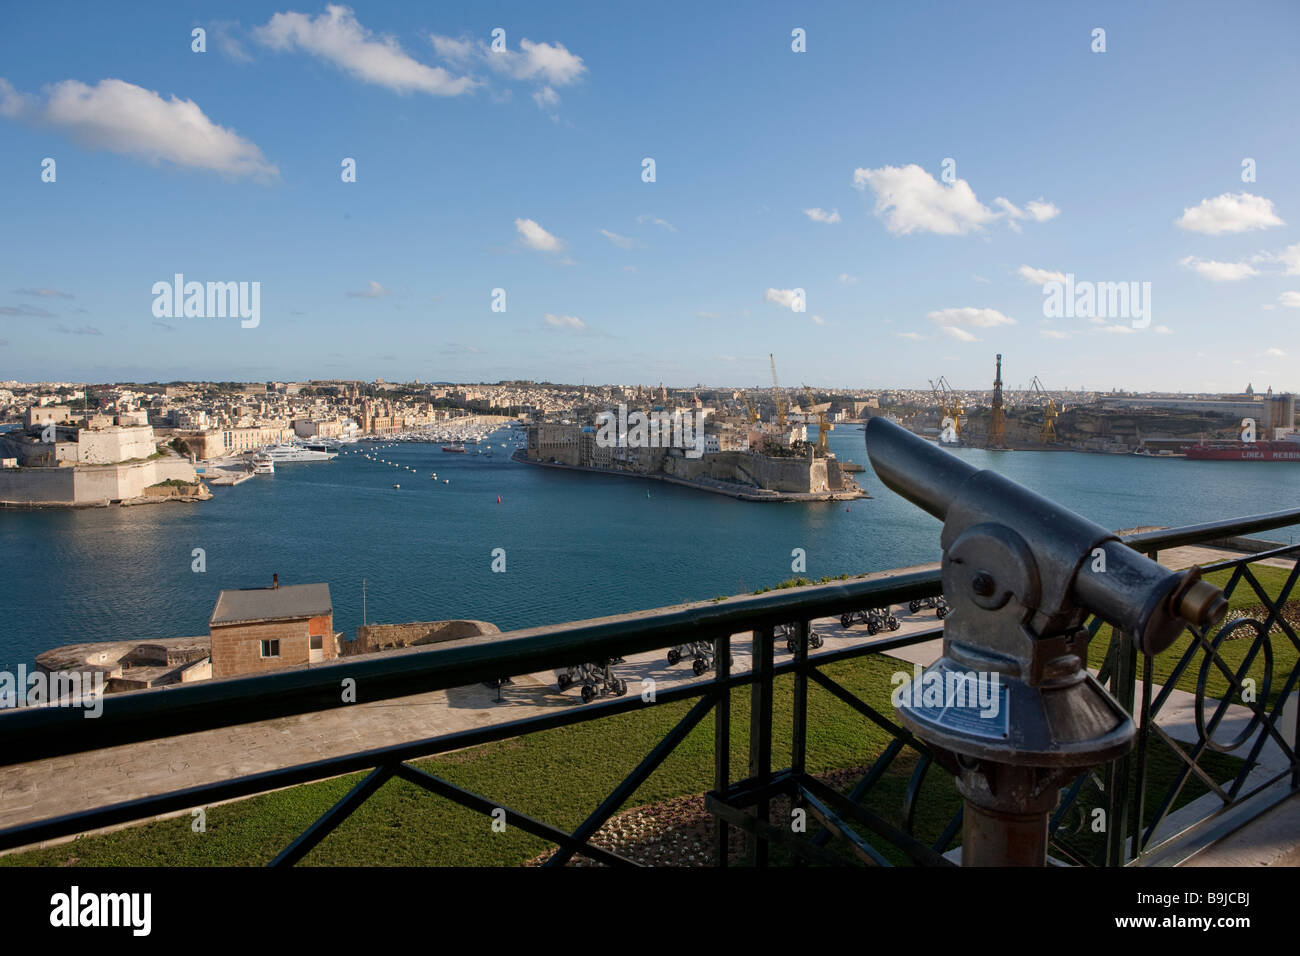 Grand Harbour, view of Senglea and Fort St Angelo from the Upper Barracca Garden, part of the Three Cities, Valletta, - Stock Image